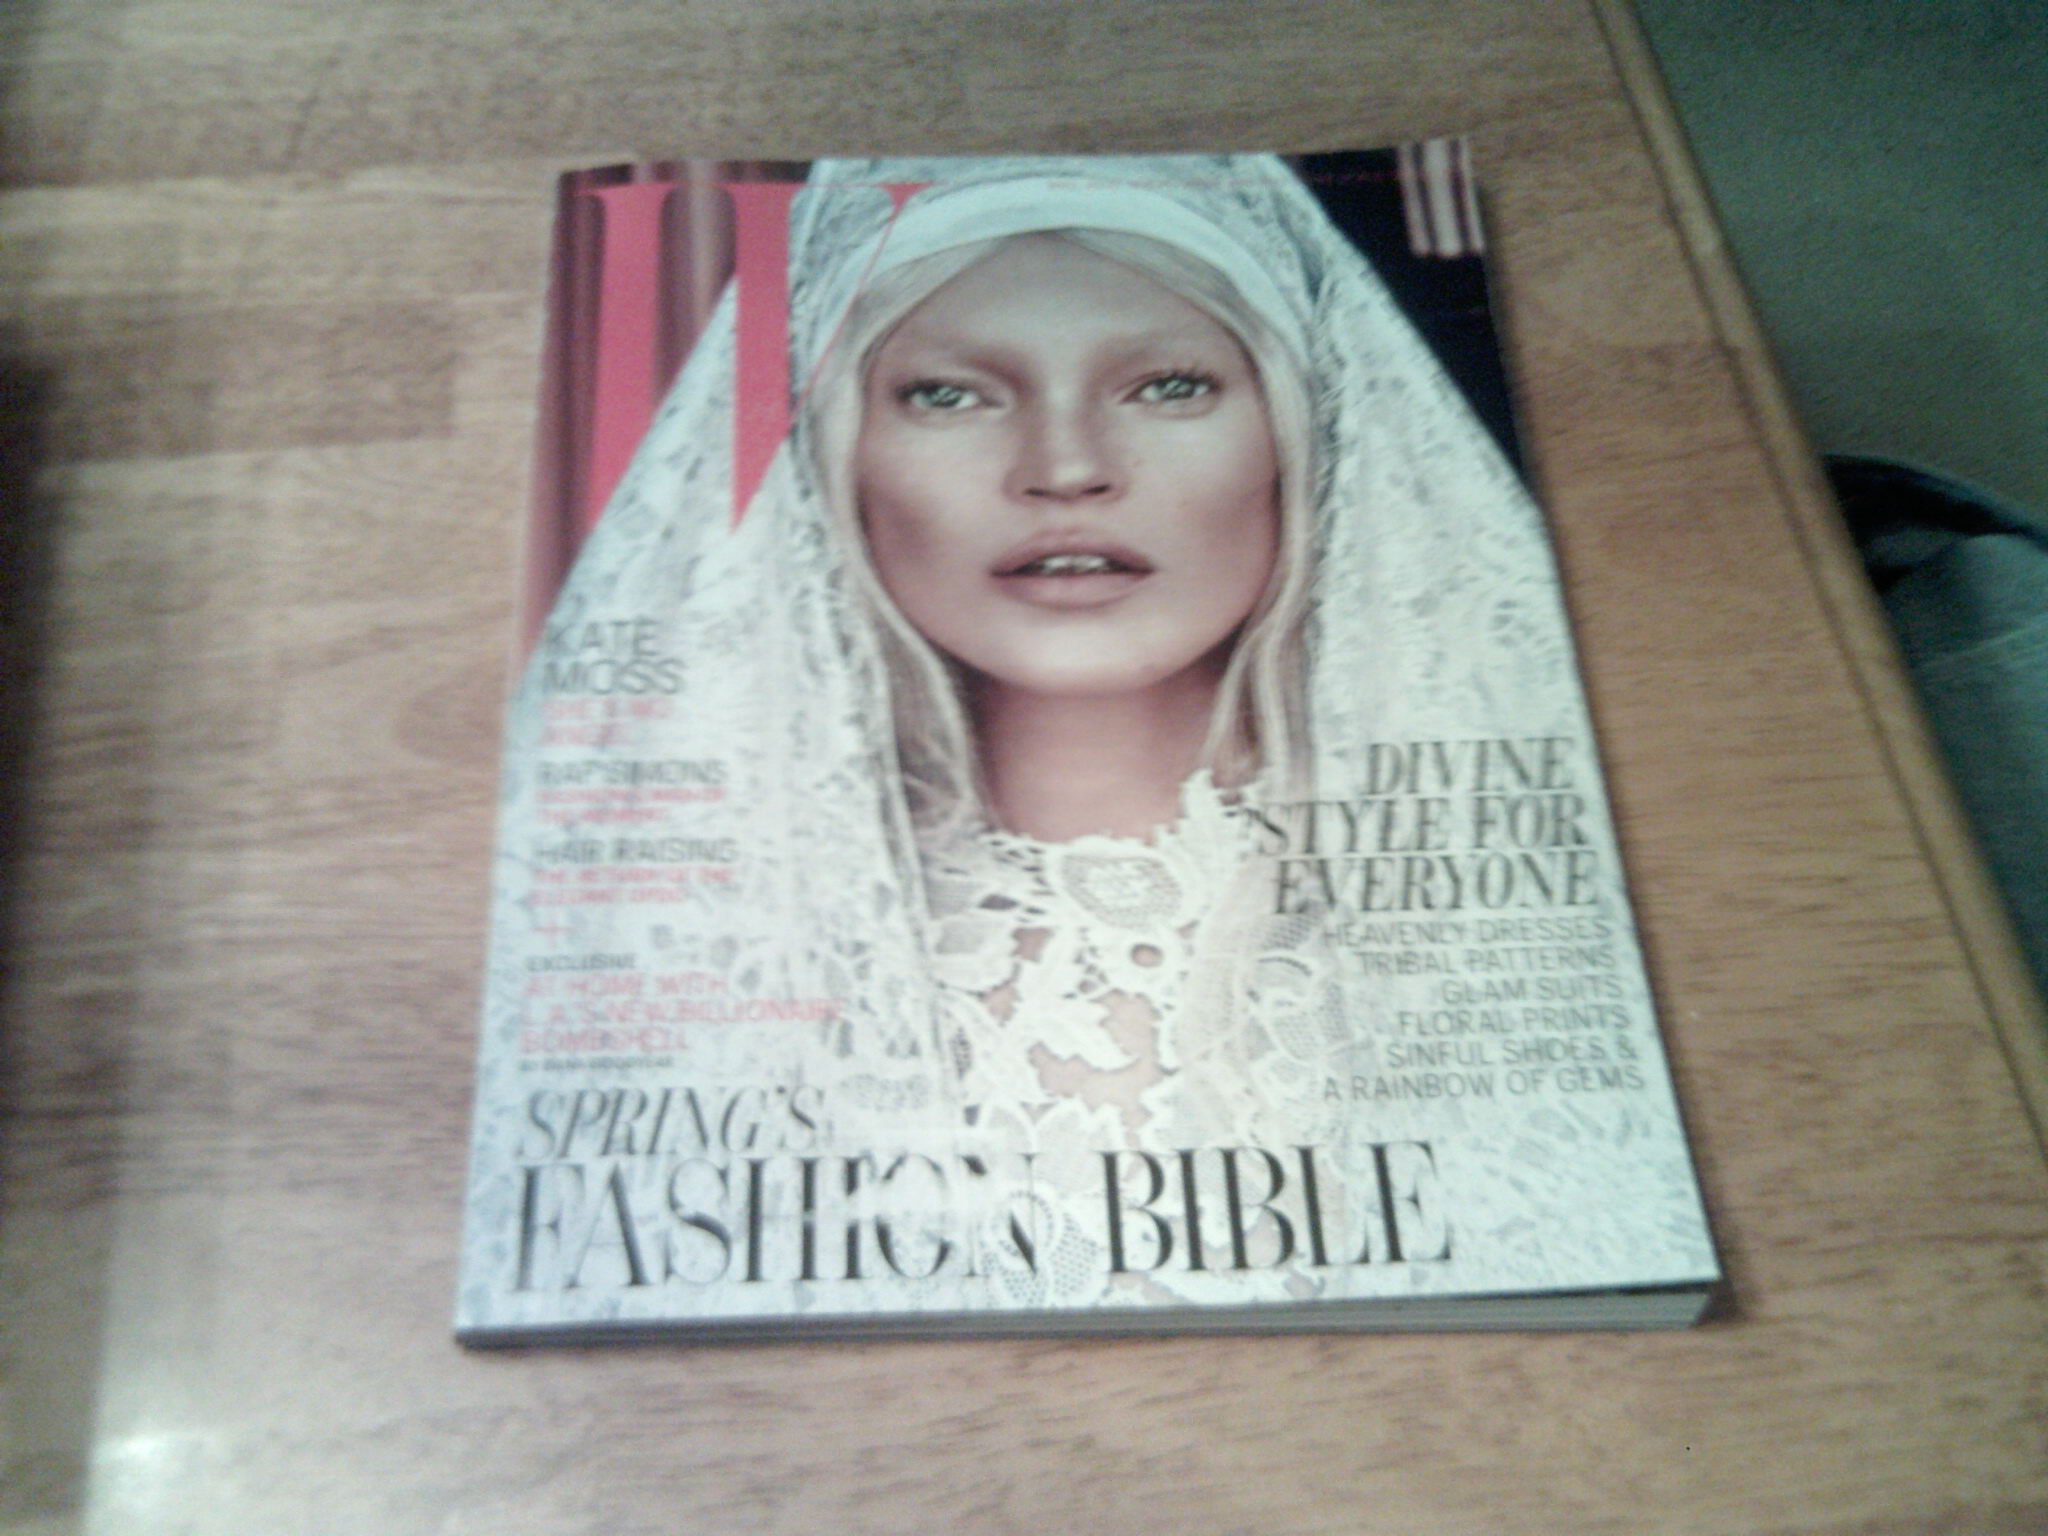 W Magazine March 2012 Kate Moss Spring's Fashion Bible ebook